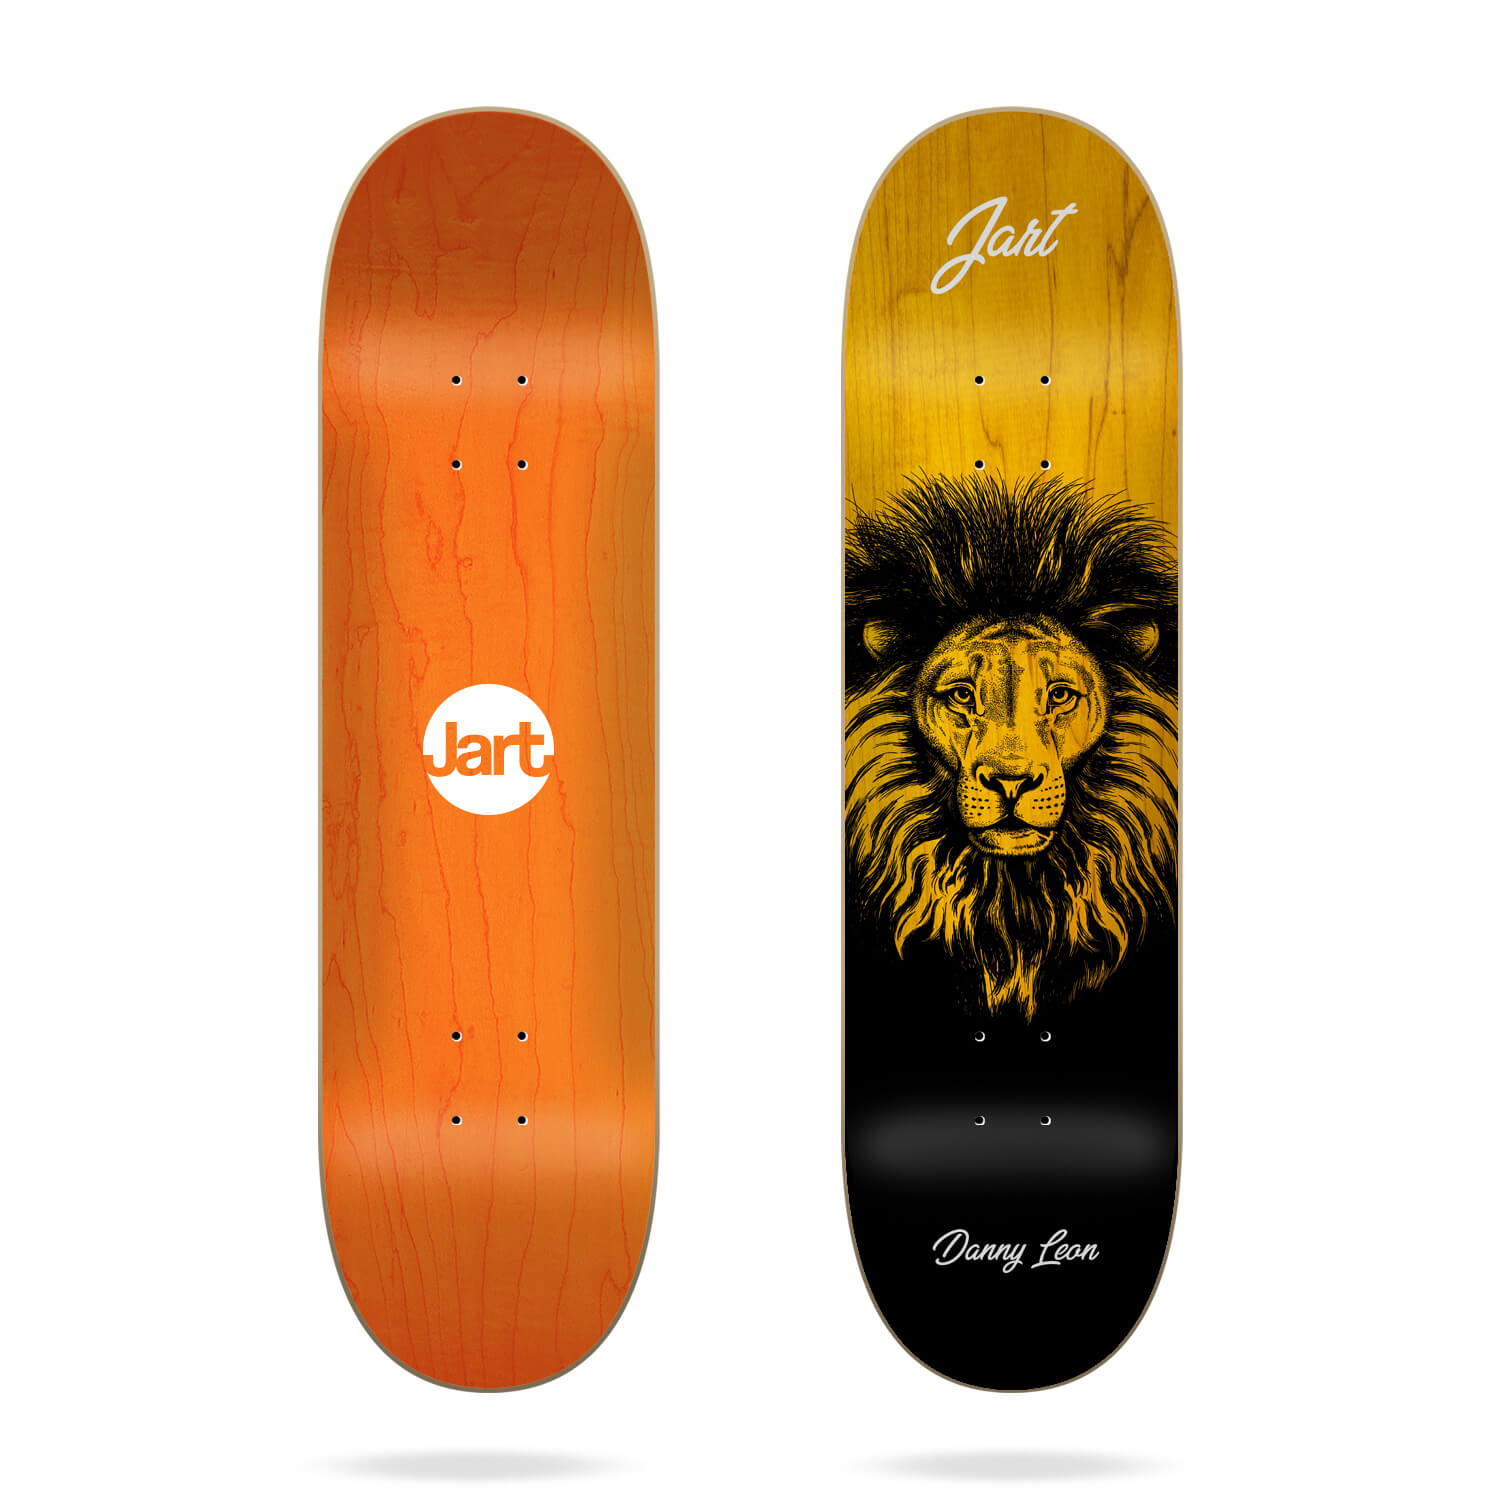 "Jart Cut Off 8.375"" Danny Leon skateboard deck"